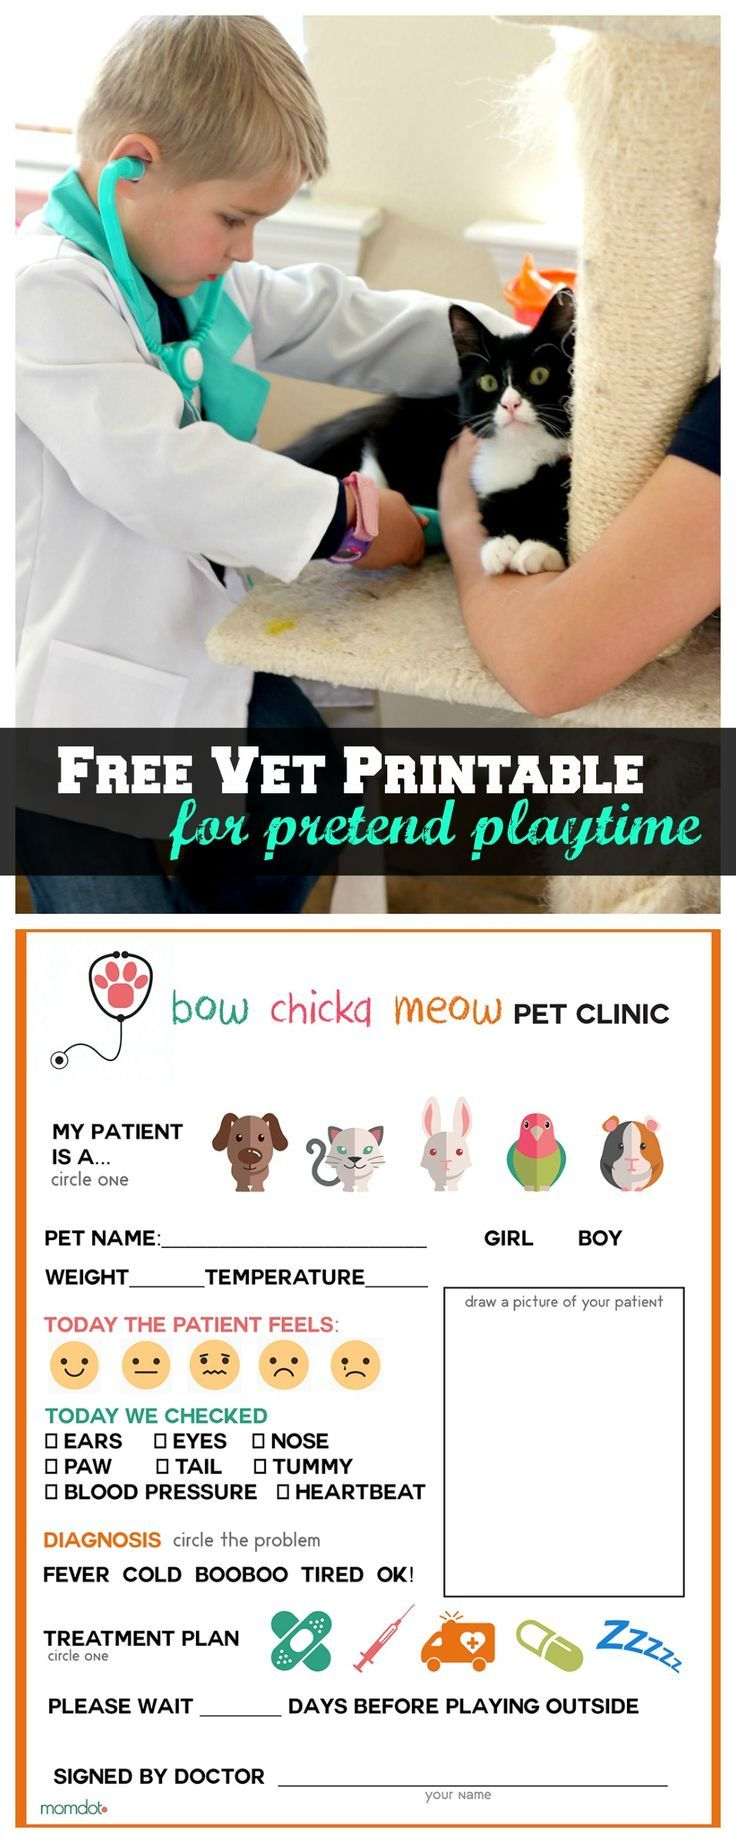 Printable Vet Office Pretend Play Sheet: Free Printable for Imagination Play